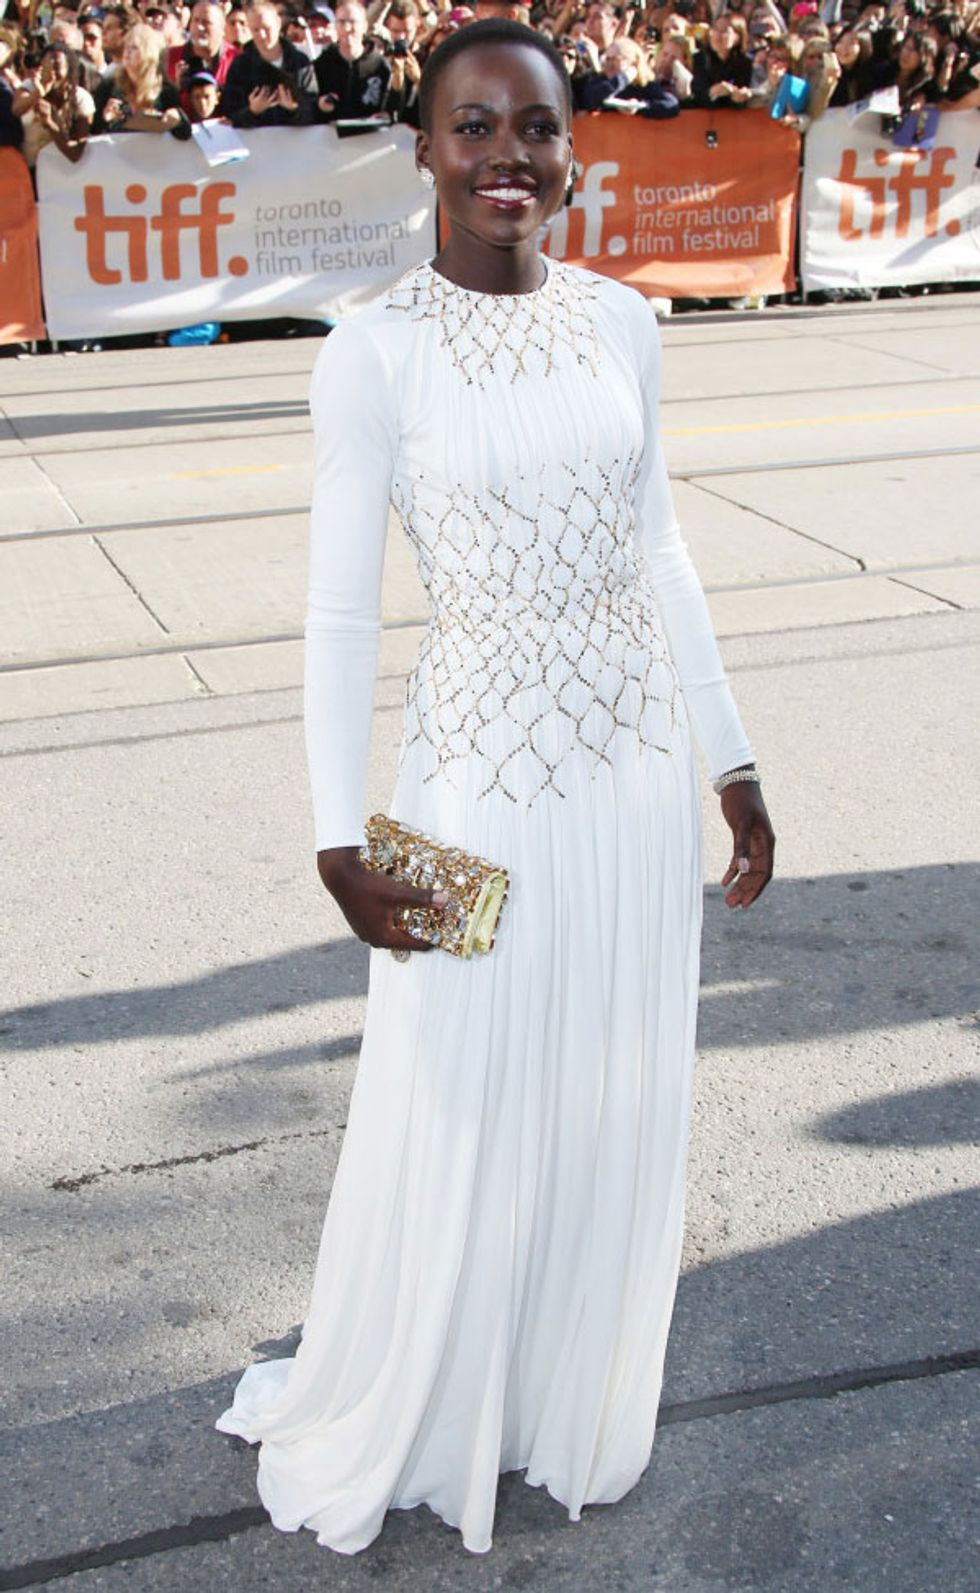 Why Actress Lupita Nyong'o Is Our New Favorite Red Carpet Star